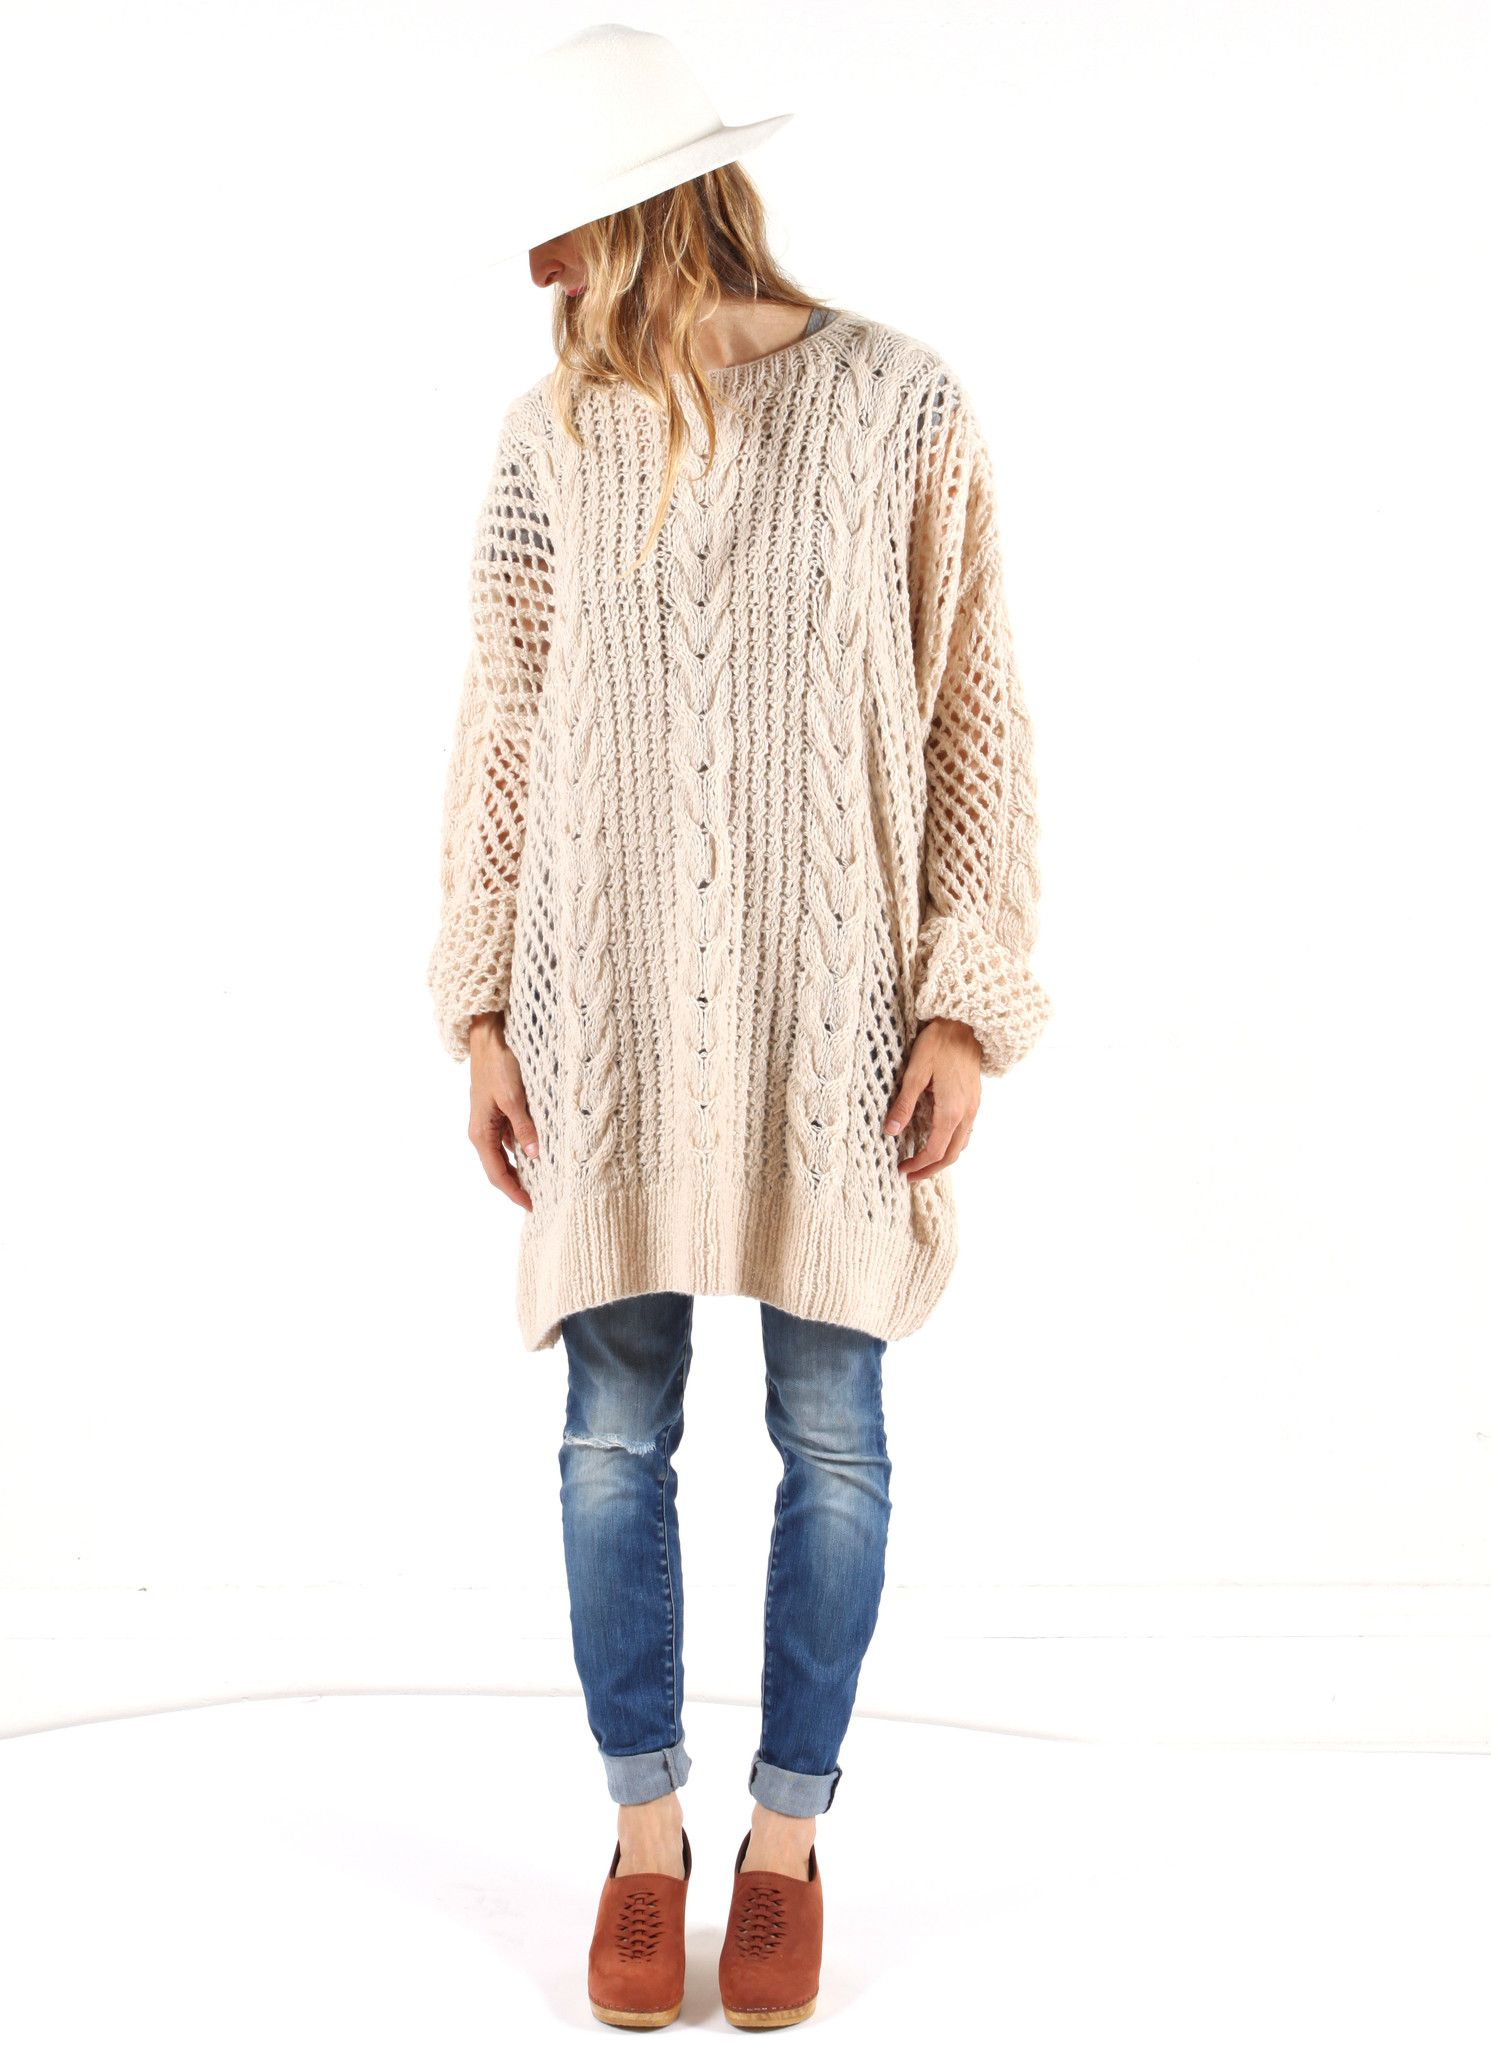 Back in Stock! Ryan Roche Oversize Cashmere Cable knit